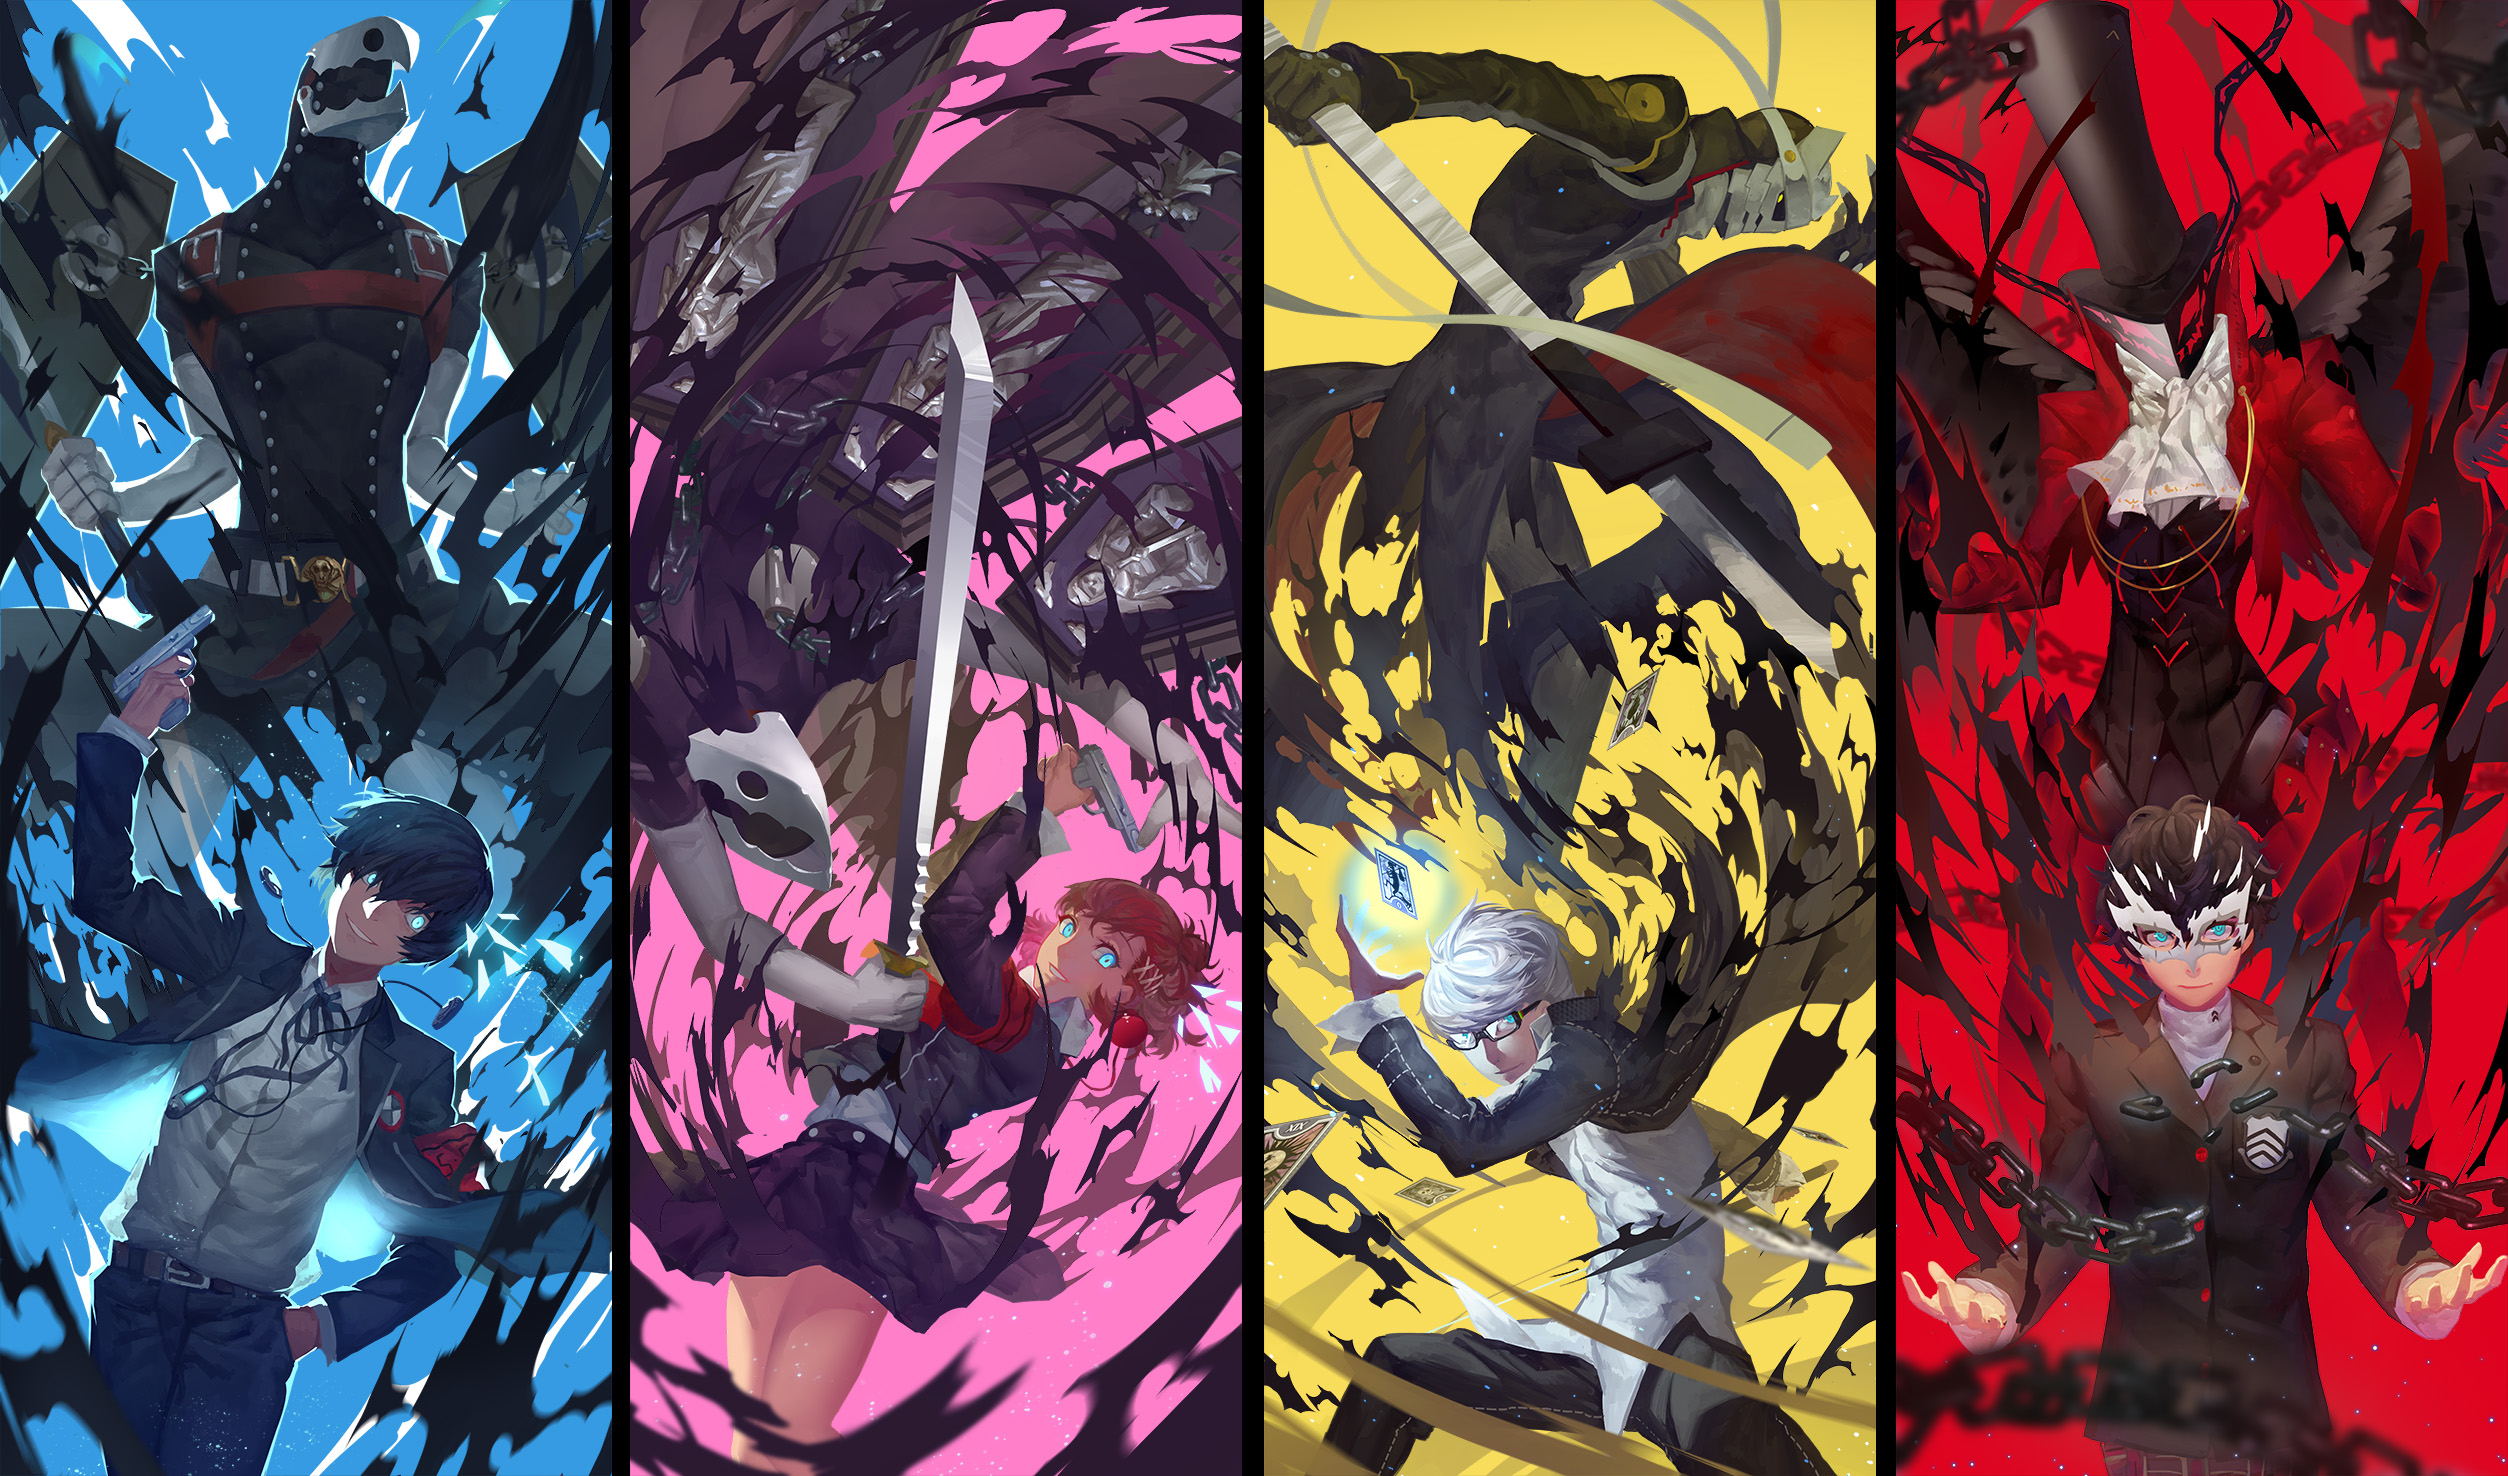 Persona 3 iphone 5 wallpaper - Filter Shin Megami Tensei Persona 3 Wallpaper